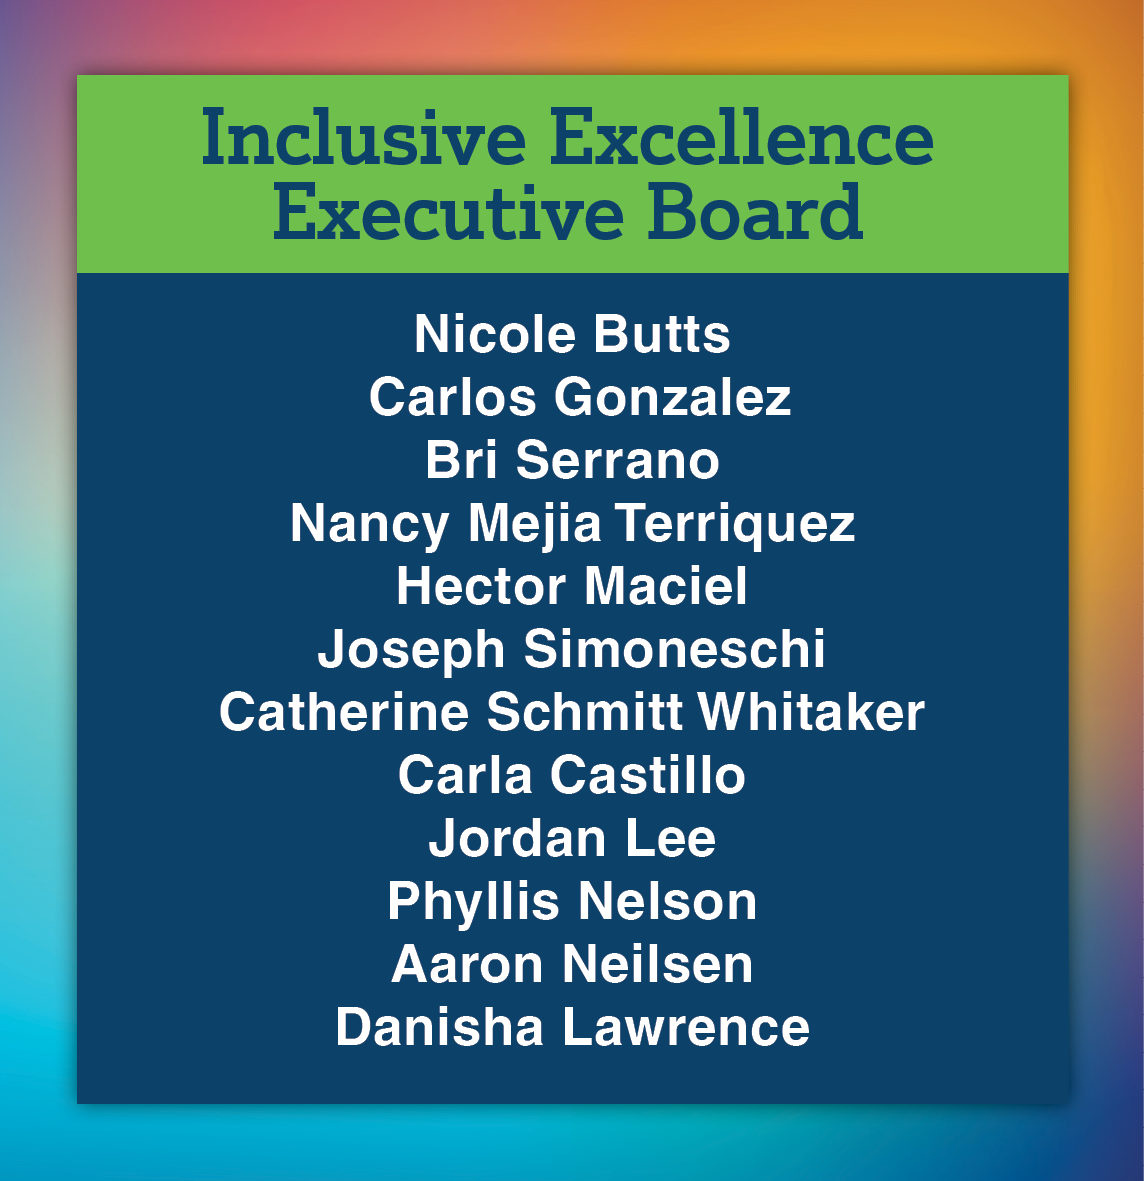 Graphic with list of names of people on the Inclusive Excellence Board.